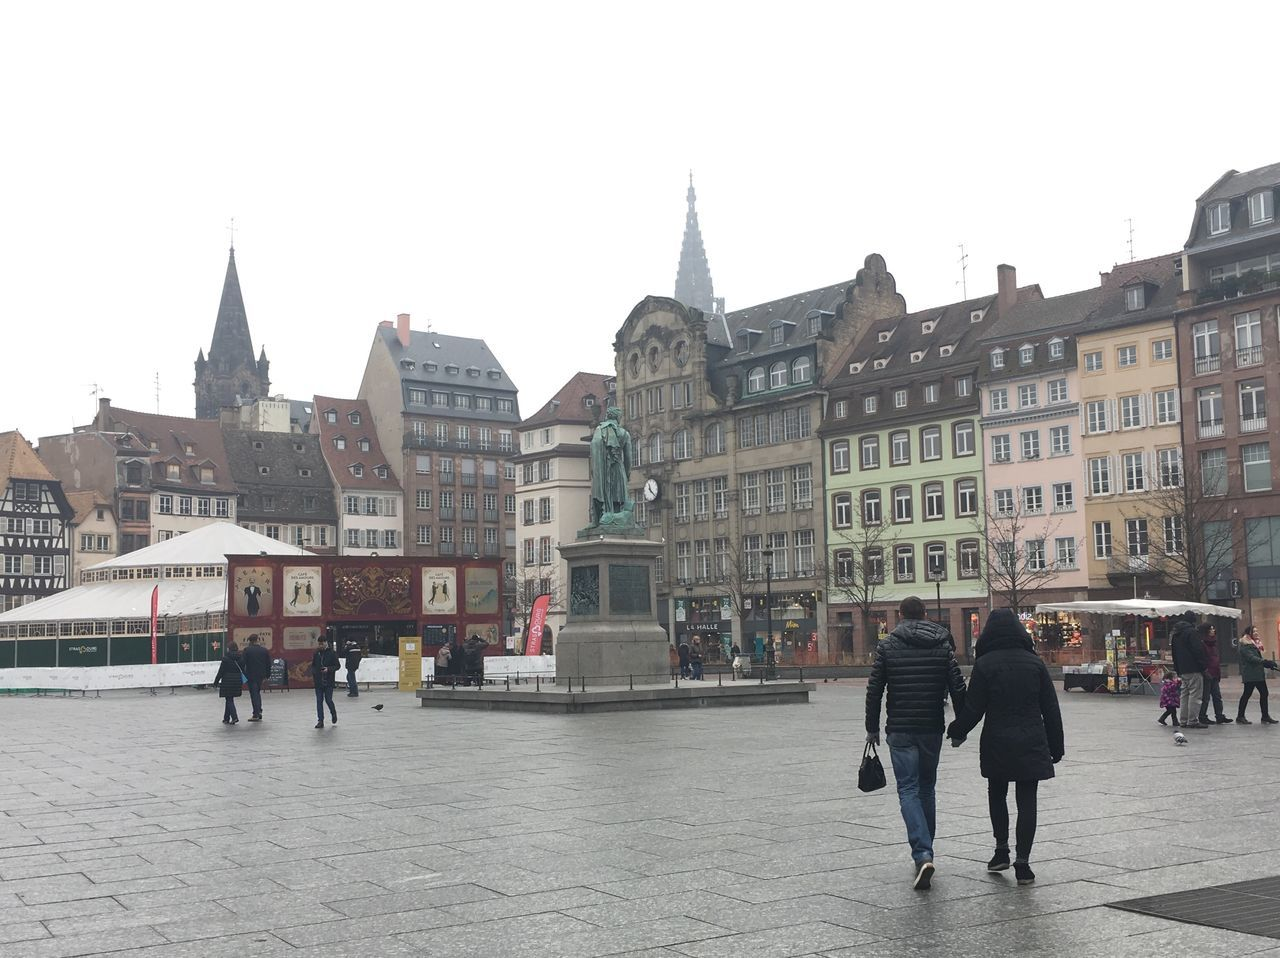 Two People Strasbourg France Square Market Love Winter Architecture Historical Building Open Market Walk Francuska Free Space Navamaagal